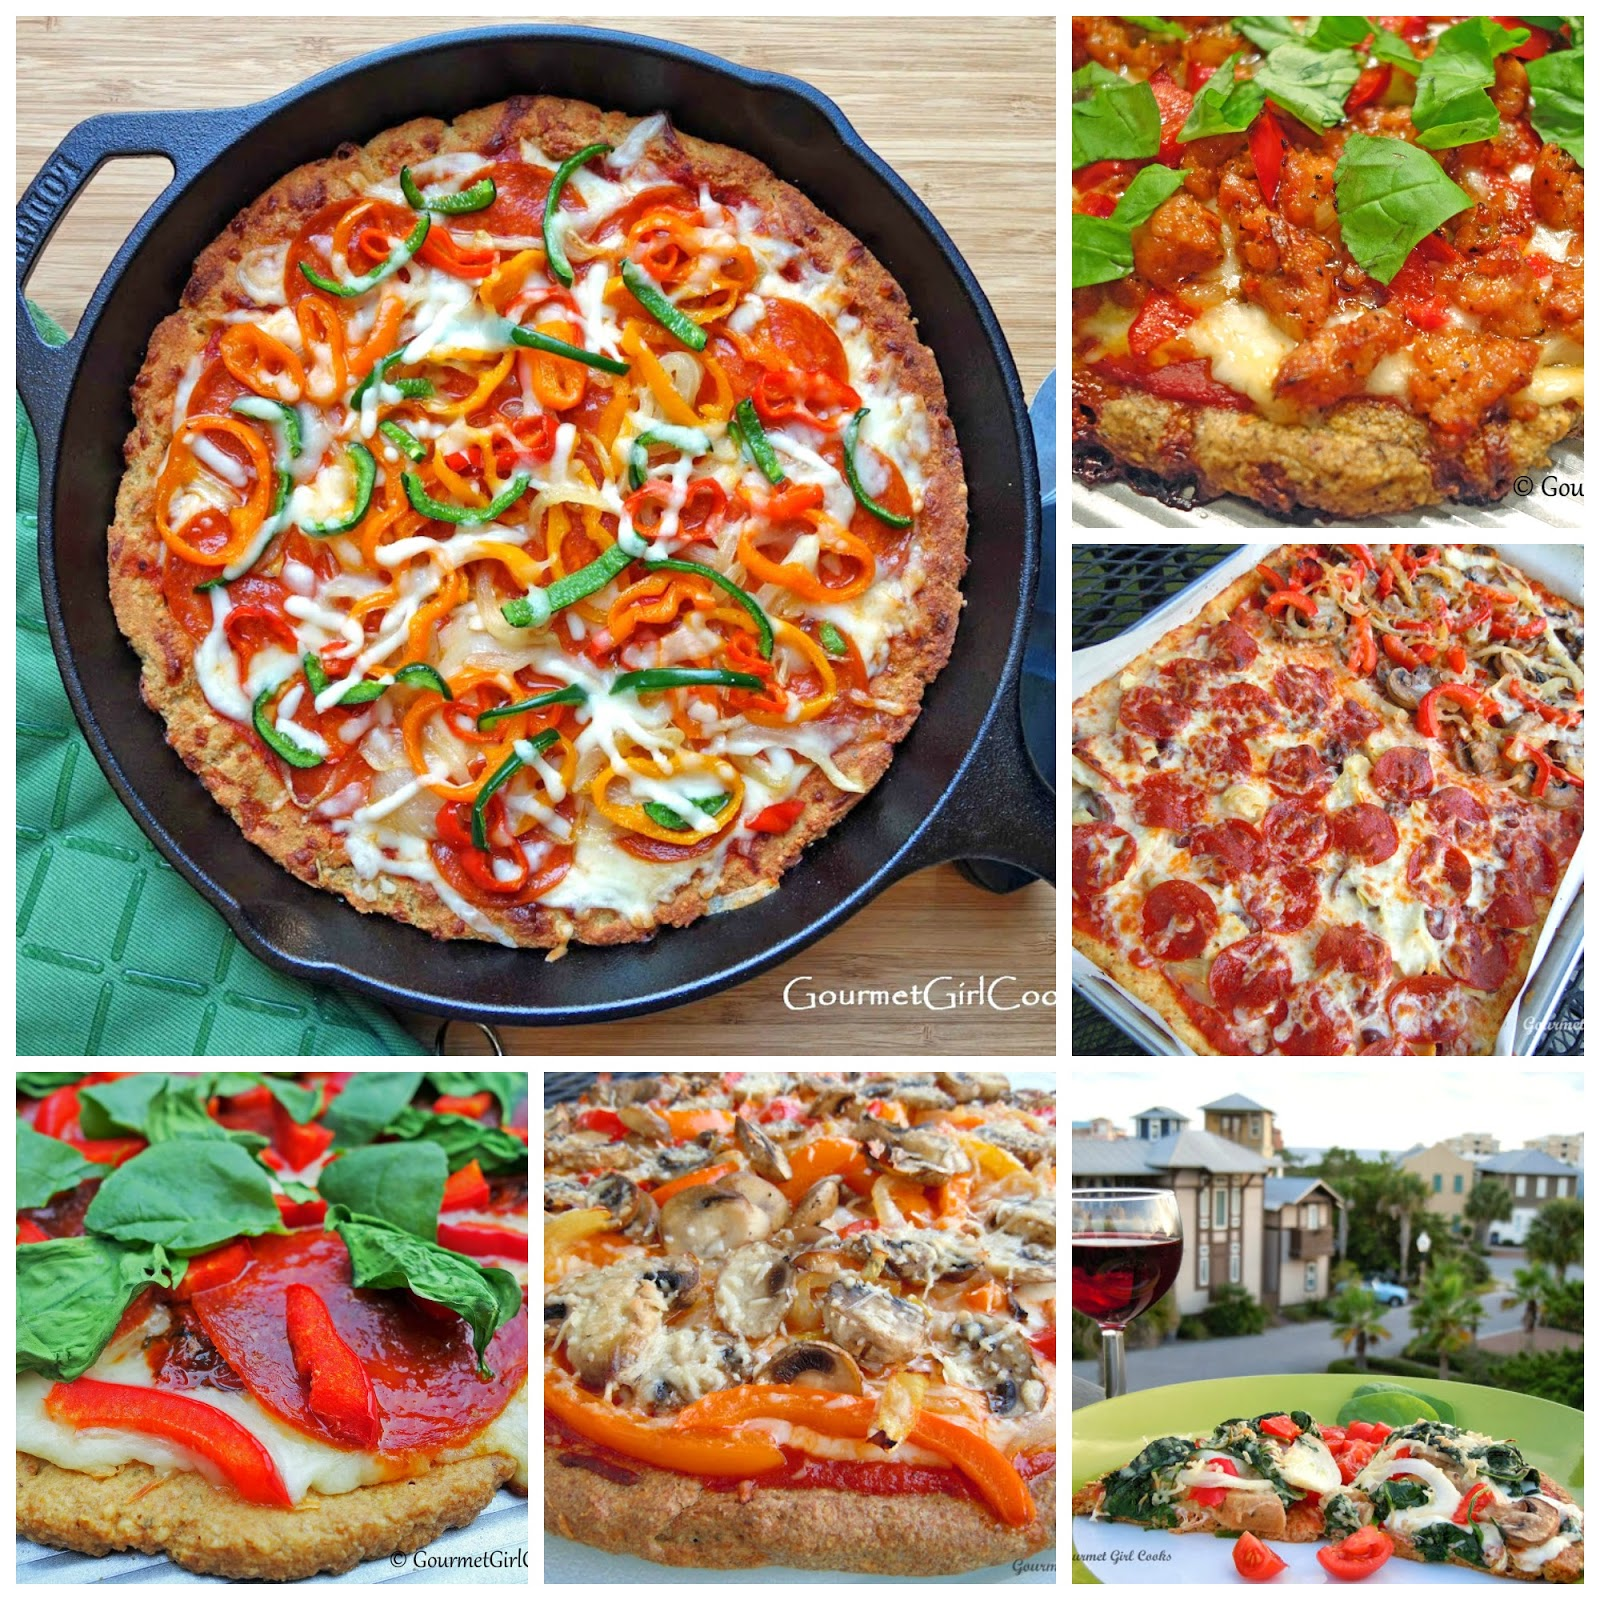 5 Amazing Pizza Crust Recipes - Low Carb, Gluten Free & Delicious!